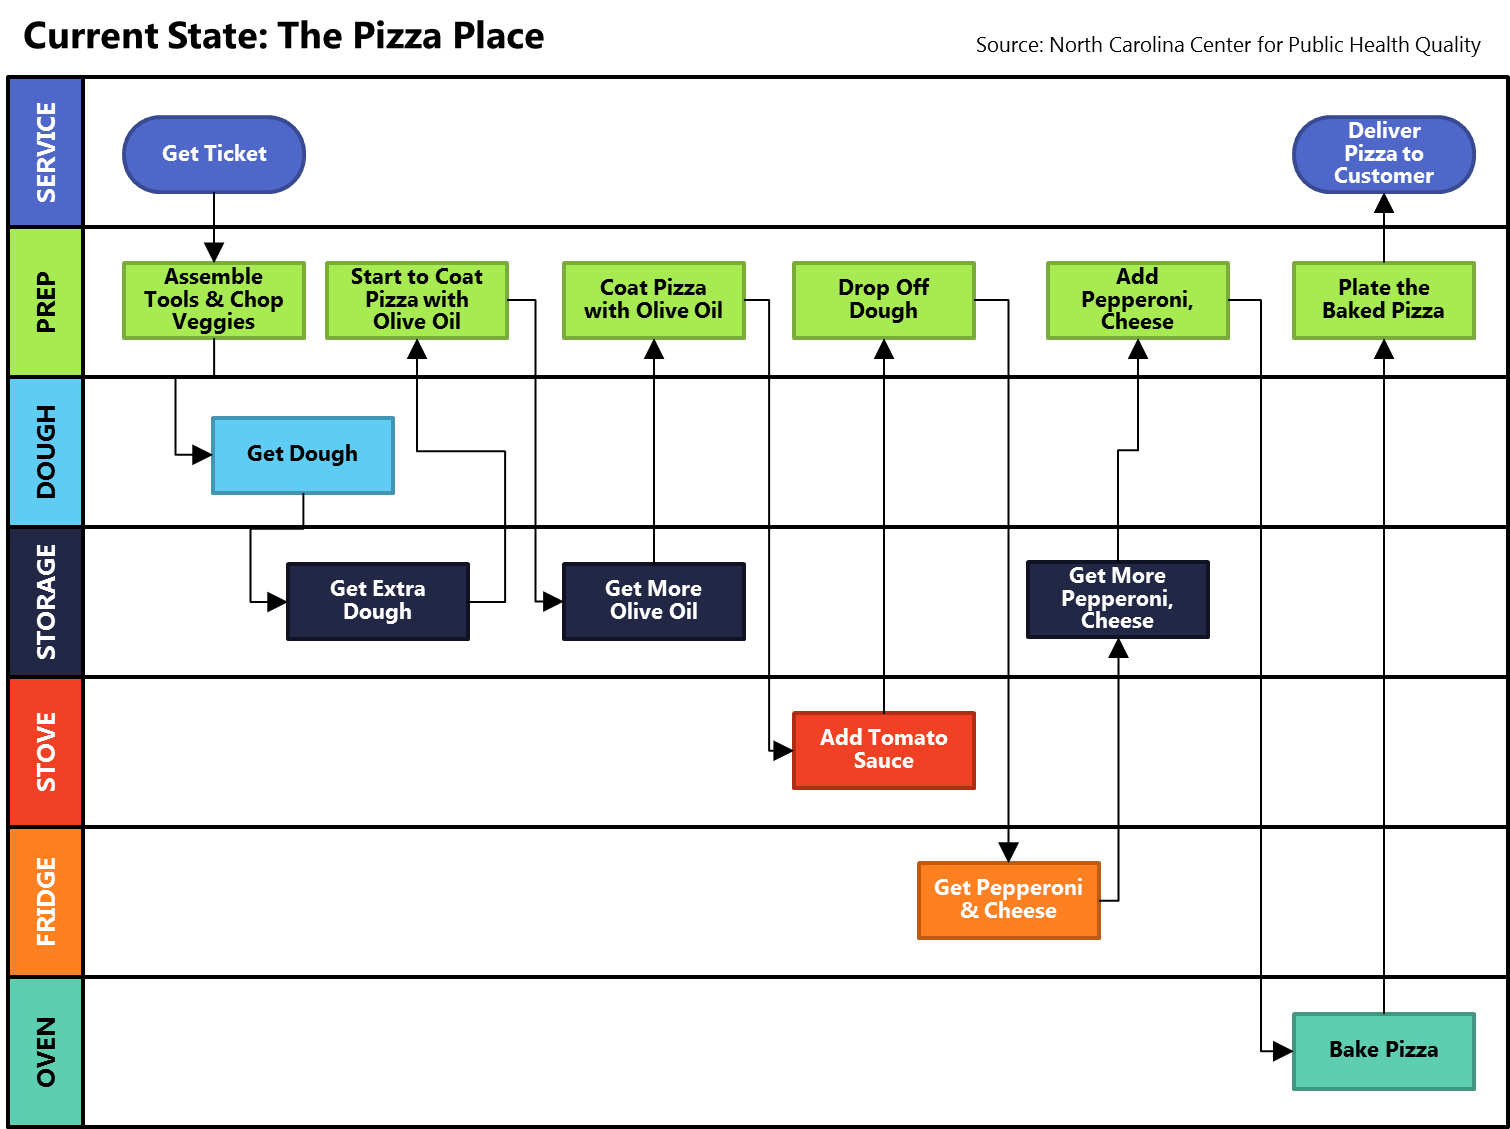 Learn about swimlanes in process mapping with this pizza place example.